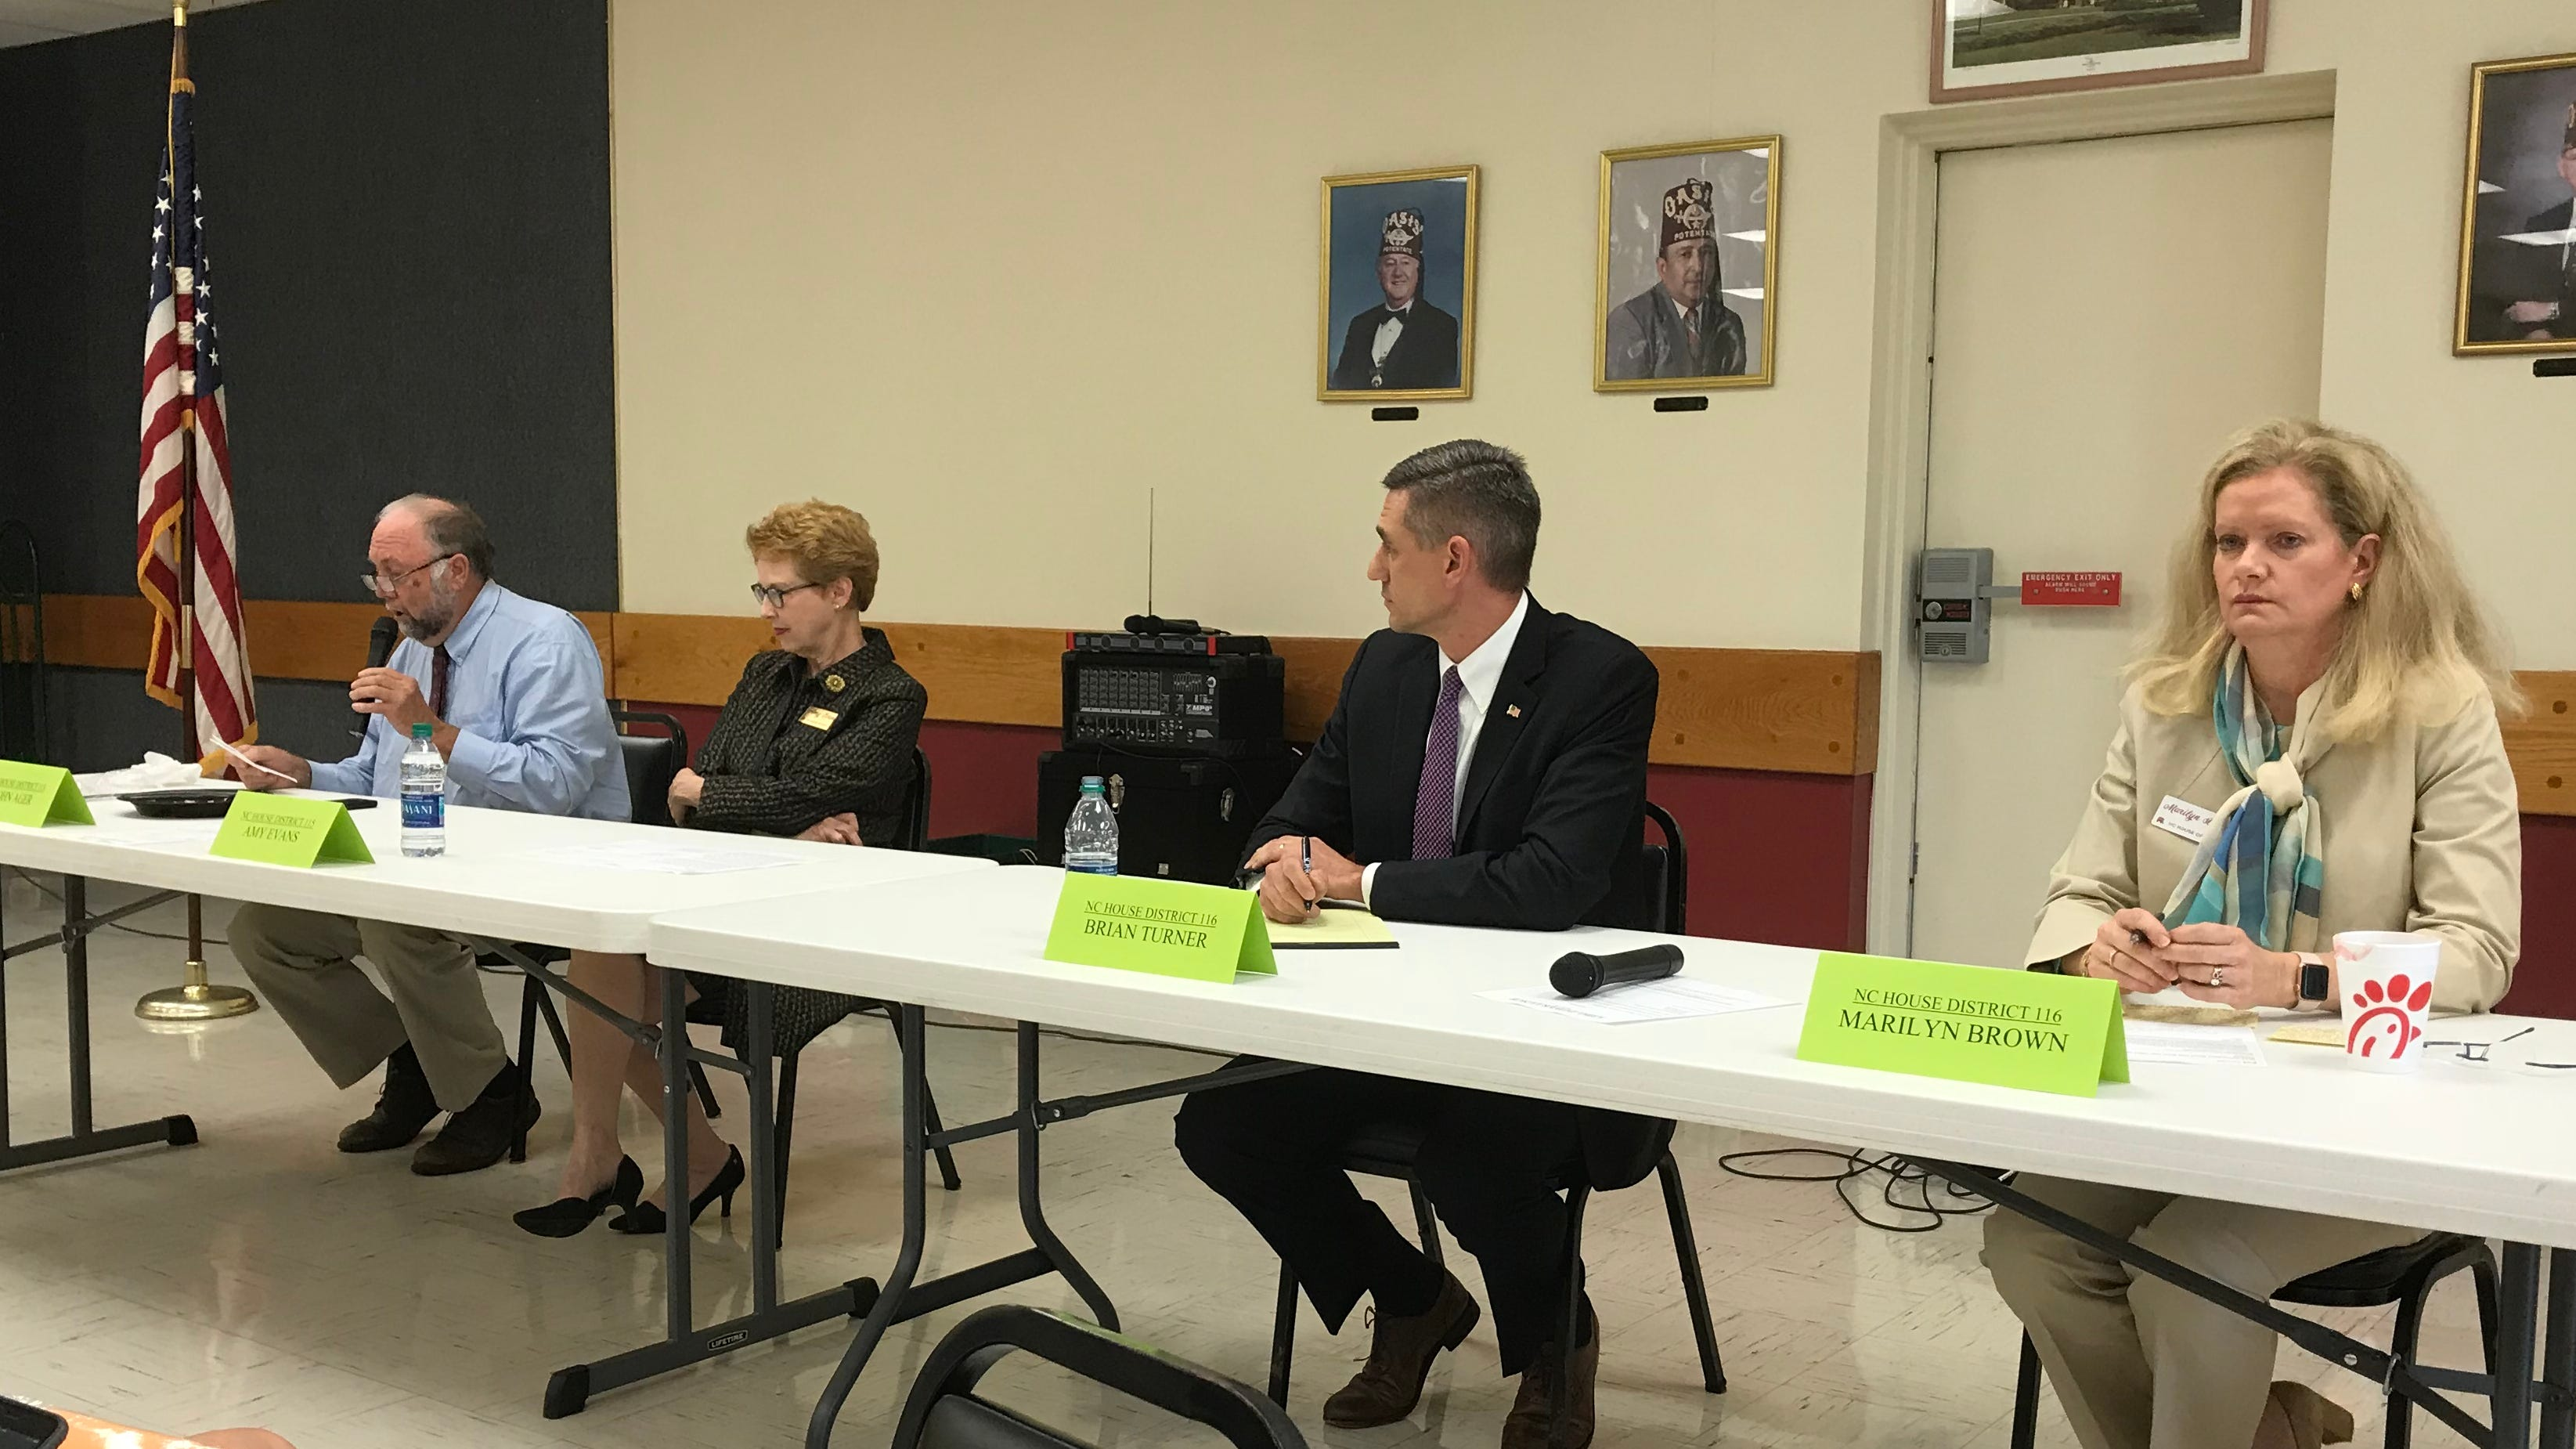 Rep. John Ager, left, makes a point while his opponent Amy Evans, to Ager's immediate right, listens during a debate Thursday. Other candidates speaking at the event  were Rep. Brian Turner and his challenger, Marilyn Brown.